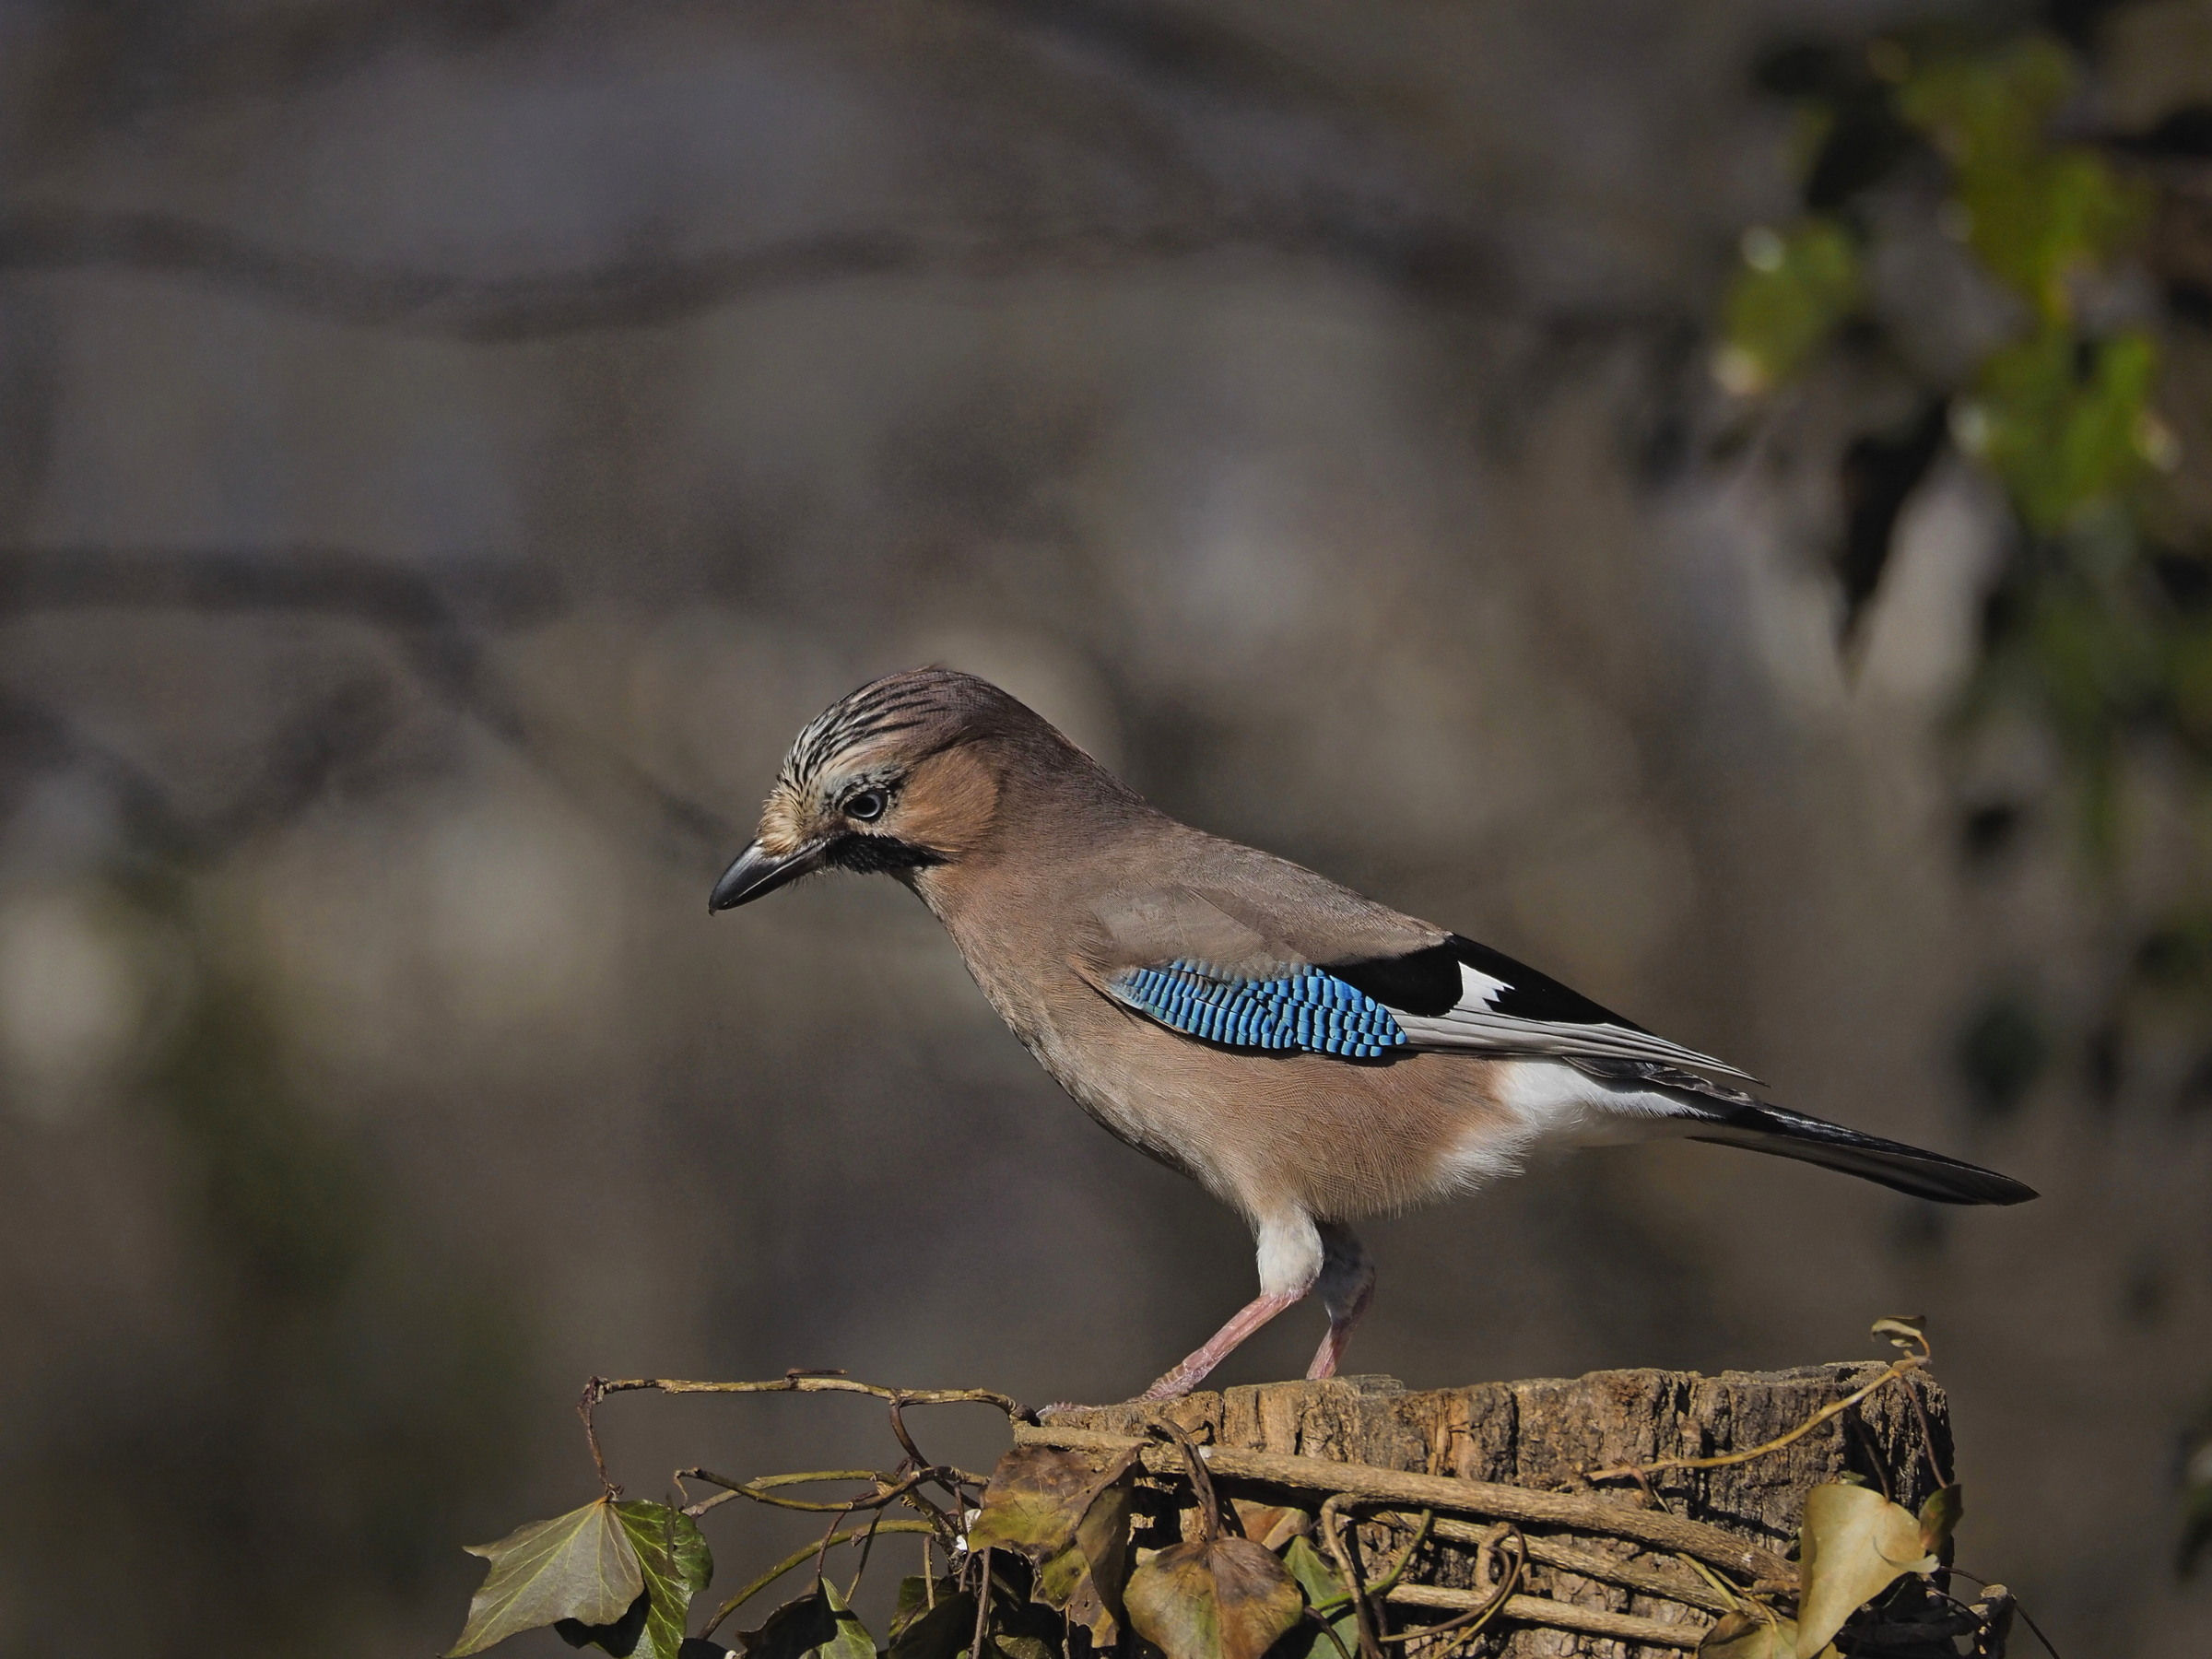 The blue feathers of the jay...